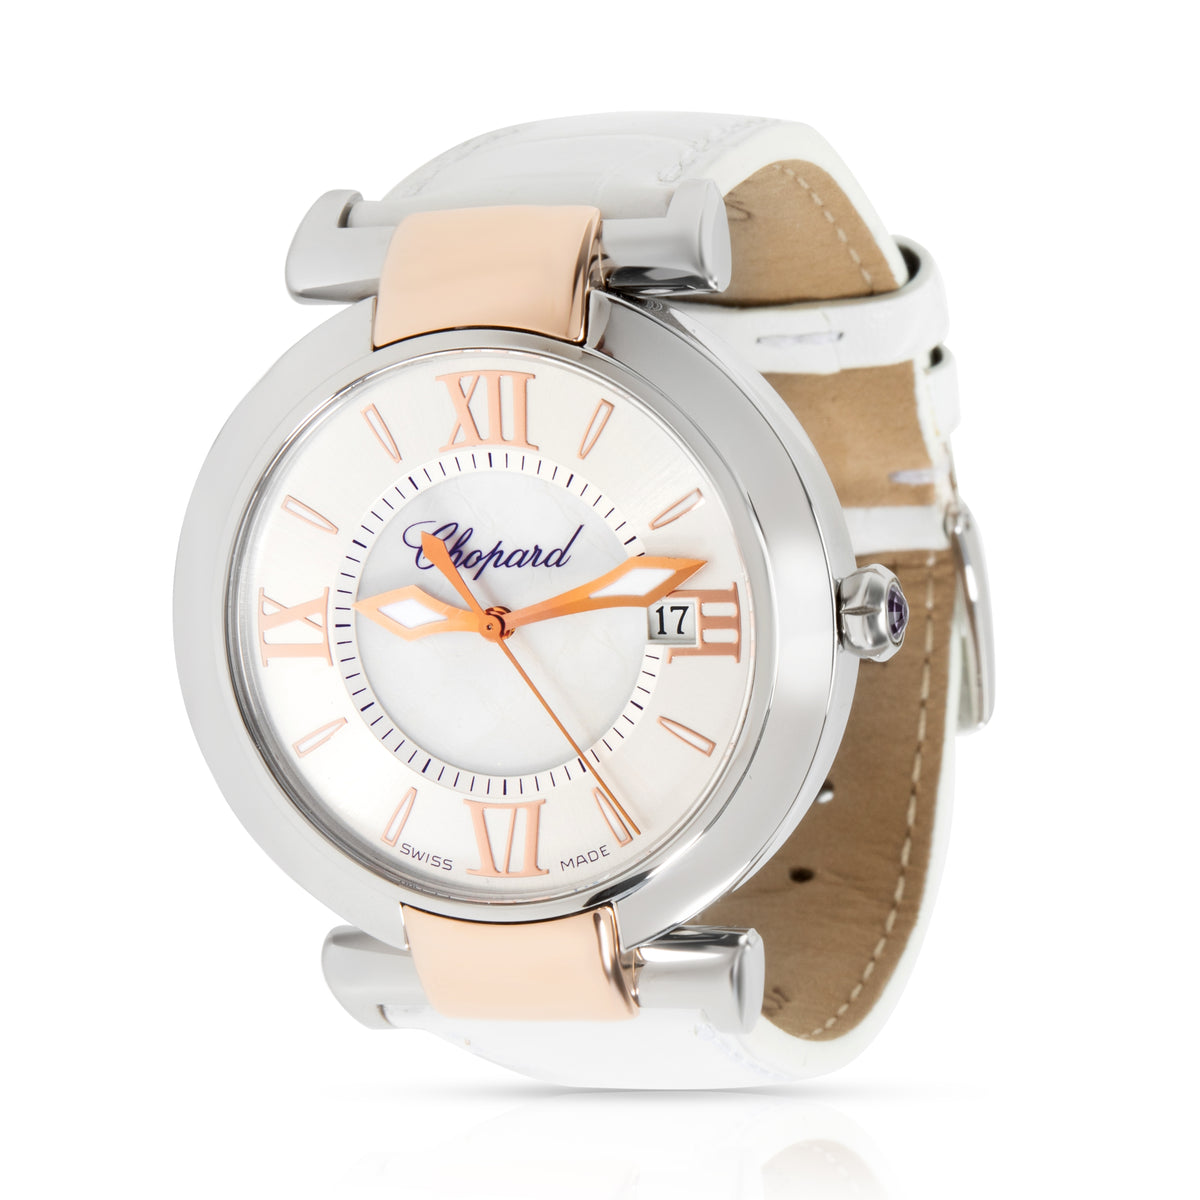 Chopard Imperiale 388532-6001 Unisex Watch in 18kt Stainless Steel/Rose Gold